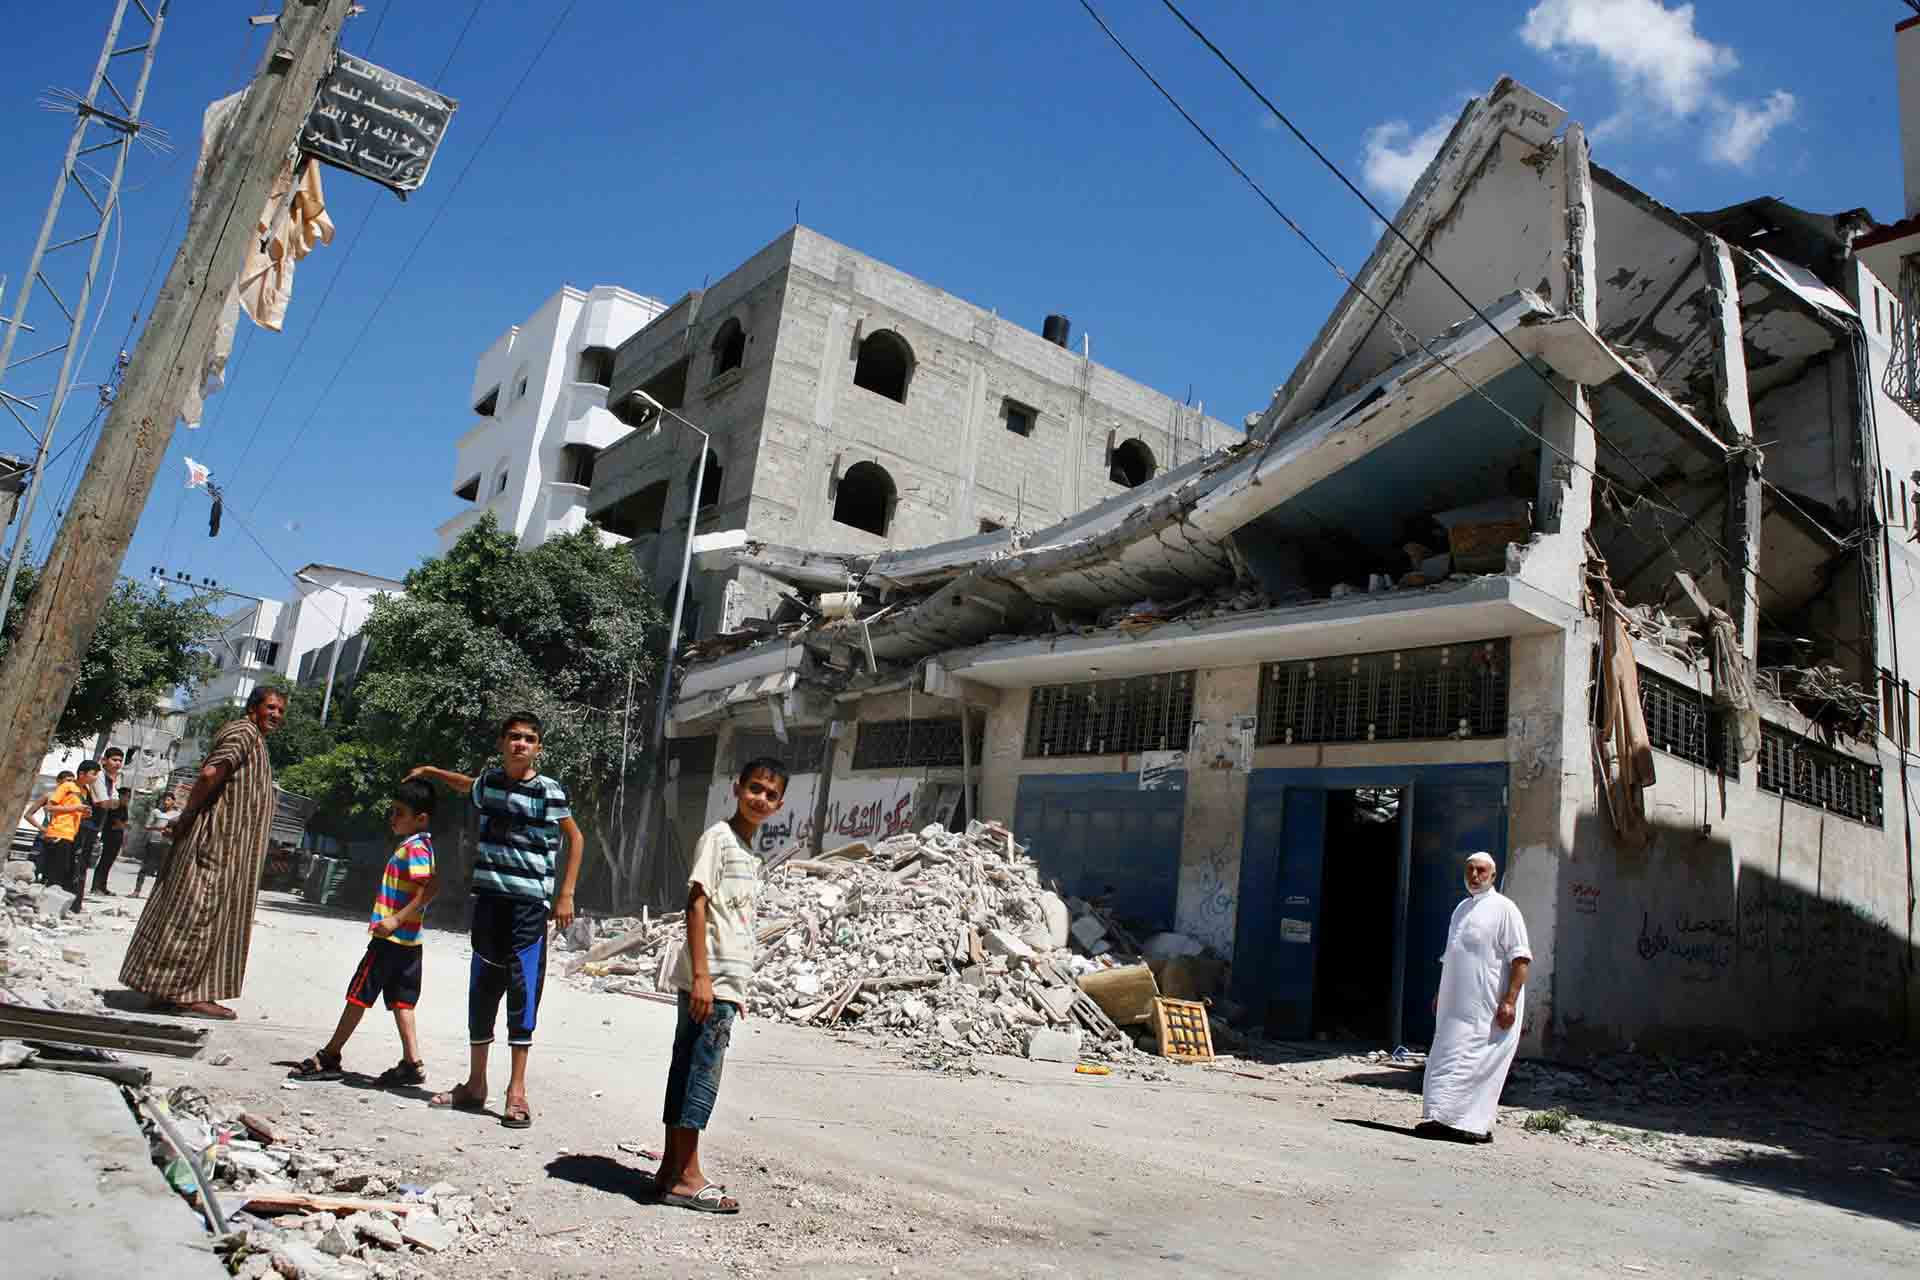 A bombed building in Shujayea. Gaza, July 2014